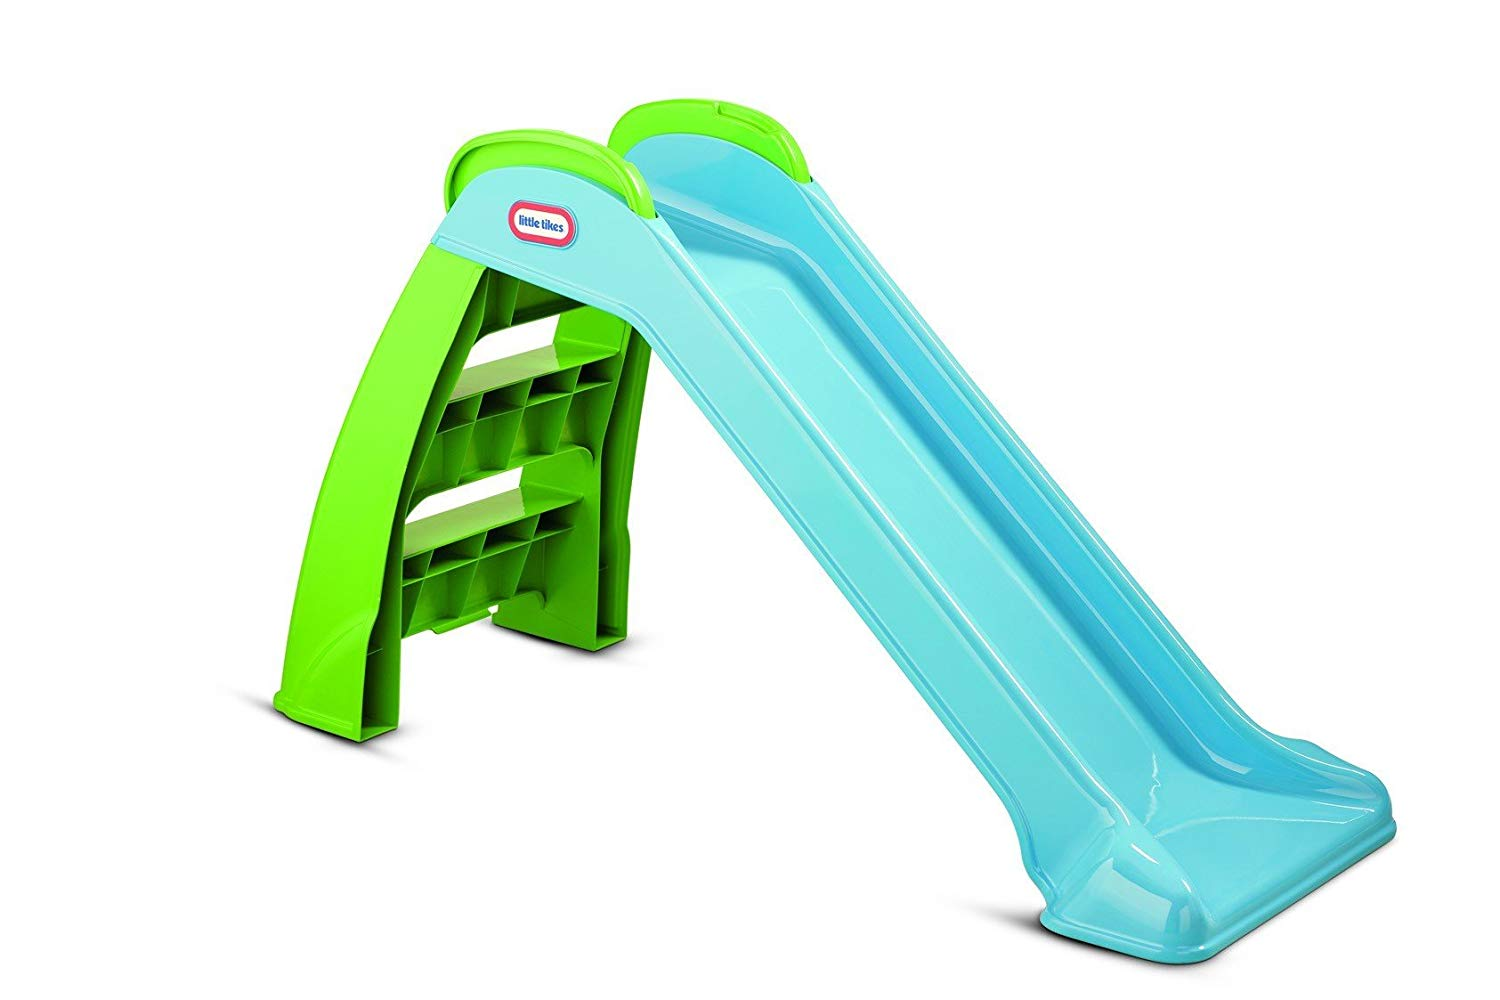 Little Tikes First Slide (Blue/ Green) - NEW IN BOX